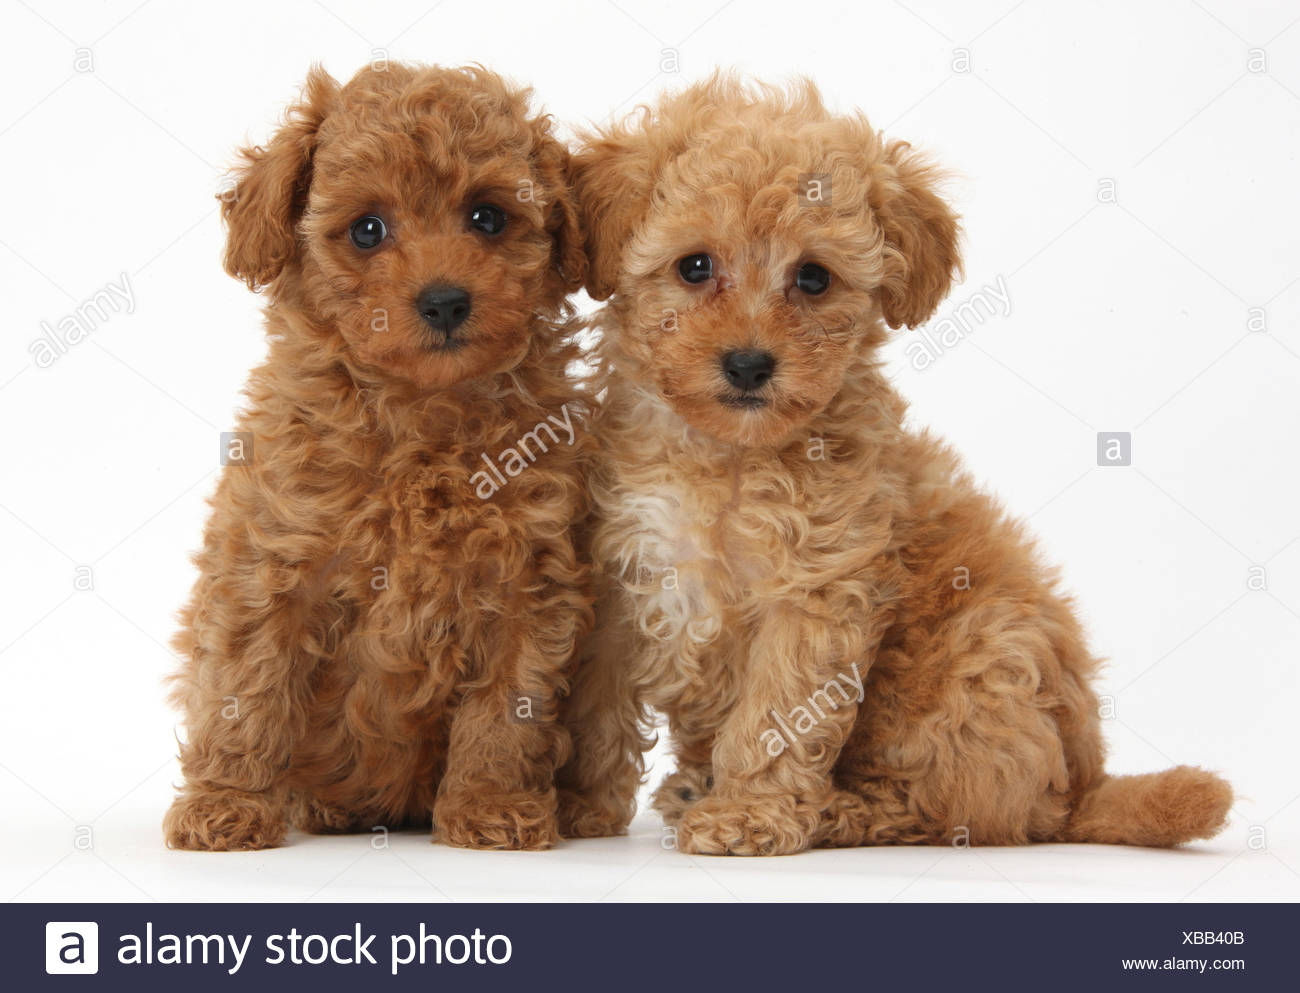 Red Toy Dogs : Two cute red toy poodle puppies against white background